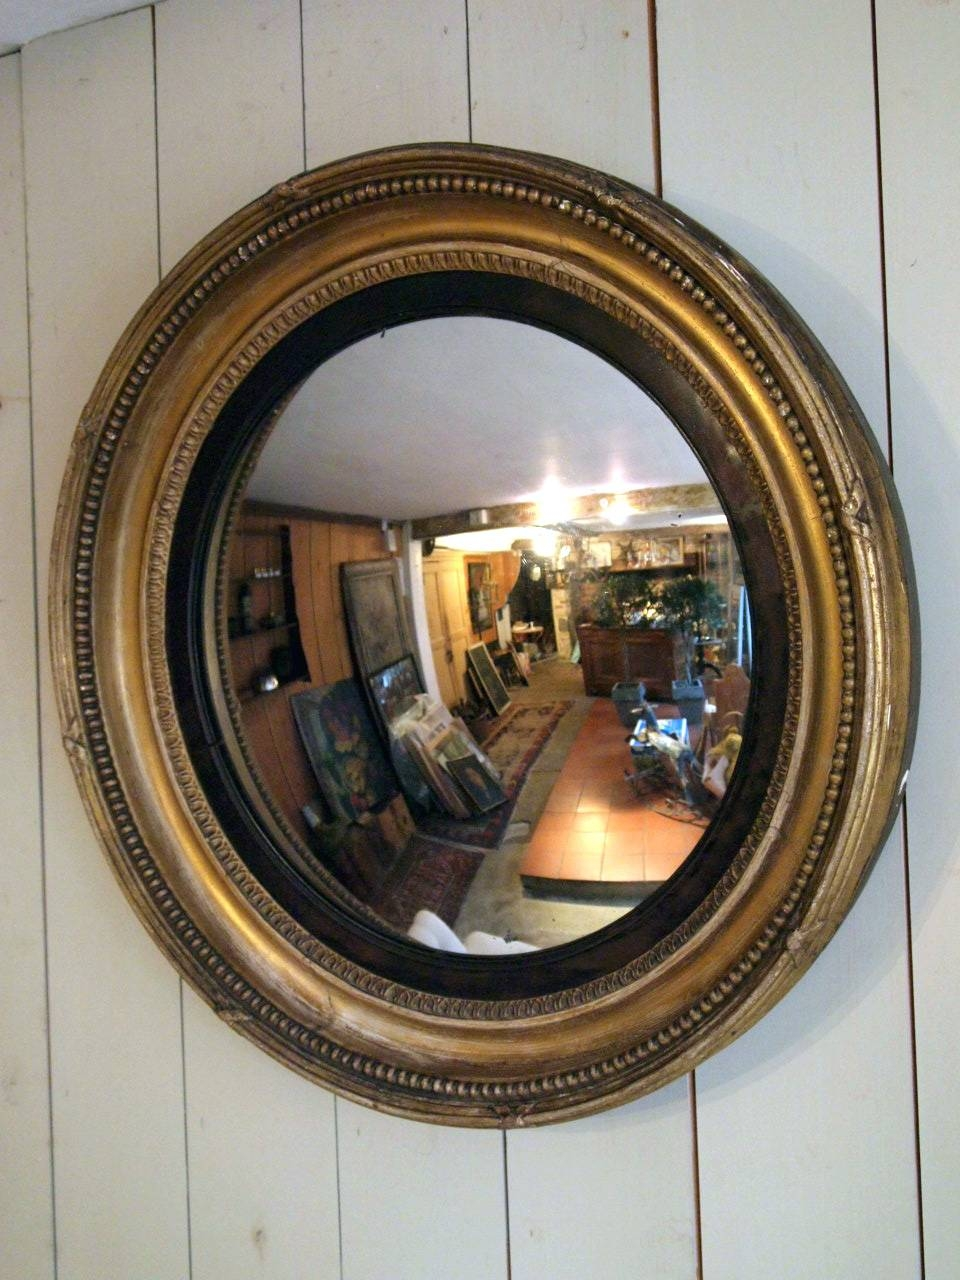 Antique Round Convex Mirror › Puckhaber Decorative Antiques within Round Convex Mirrors (Image 7 of 25)